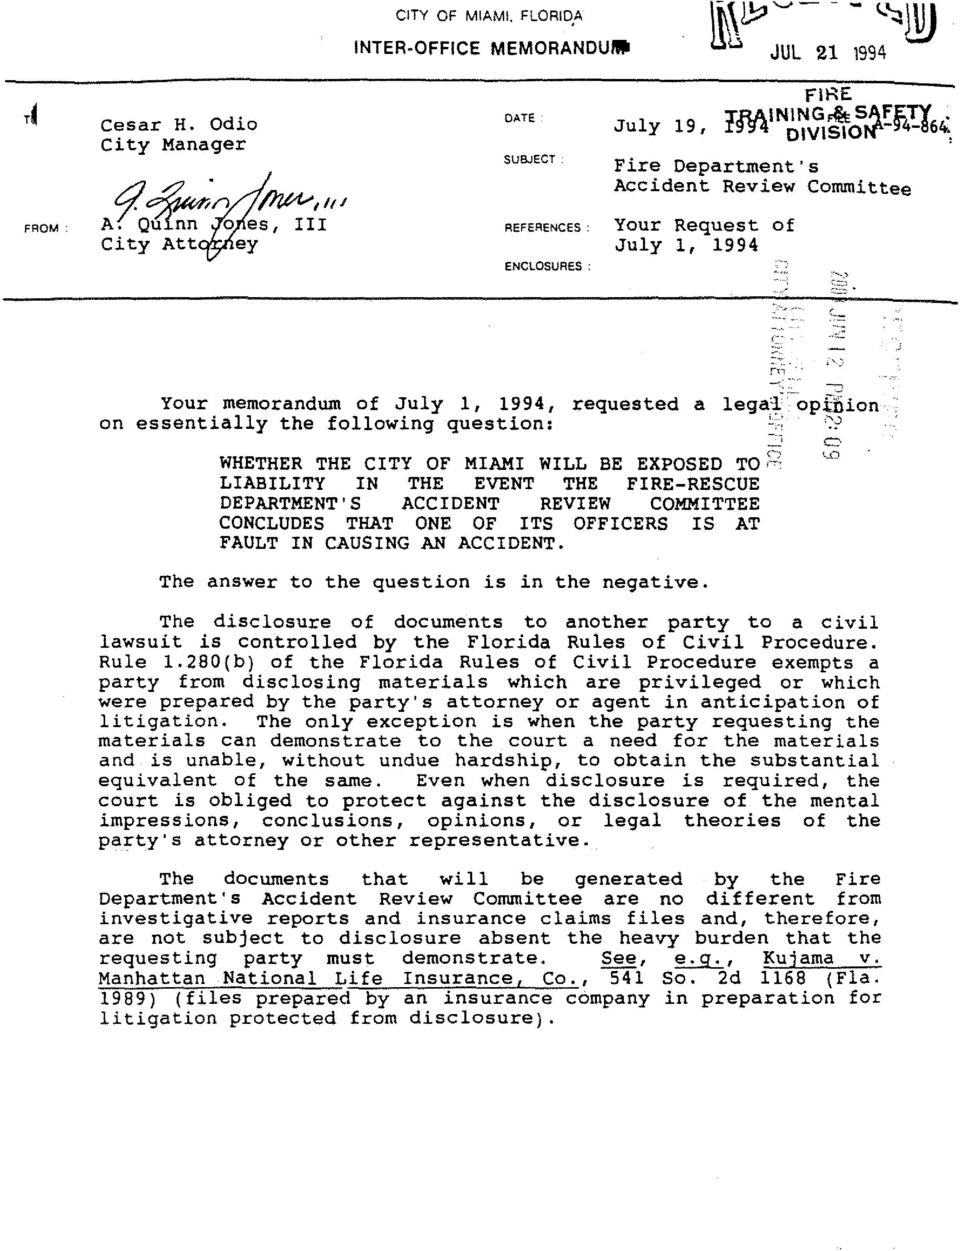 n ~ i~ Your memorandum of July 1, 1994, requested a lega3-oplbion, on essentially the following question : _ WHETHER THE CITY OF MIAMI WILL BE EXPOSED TO LIABILITY IN THE EVENT THE FIRE-RESCUE